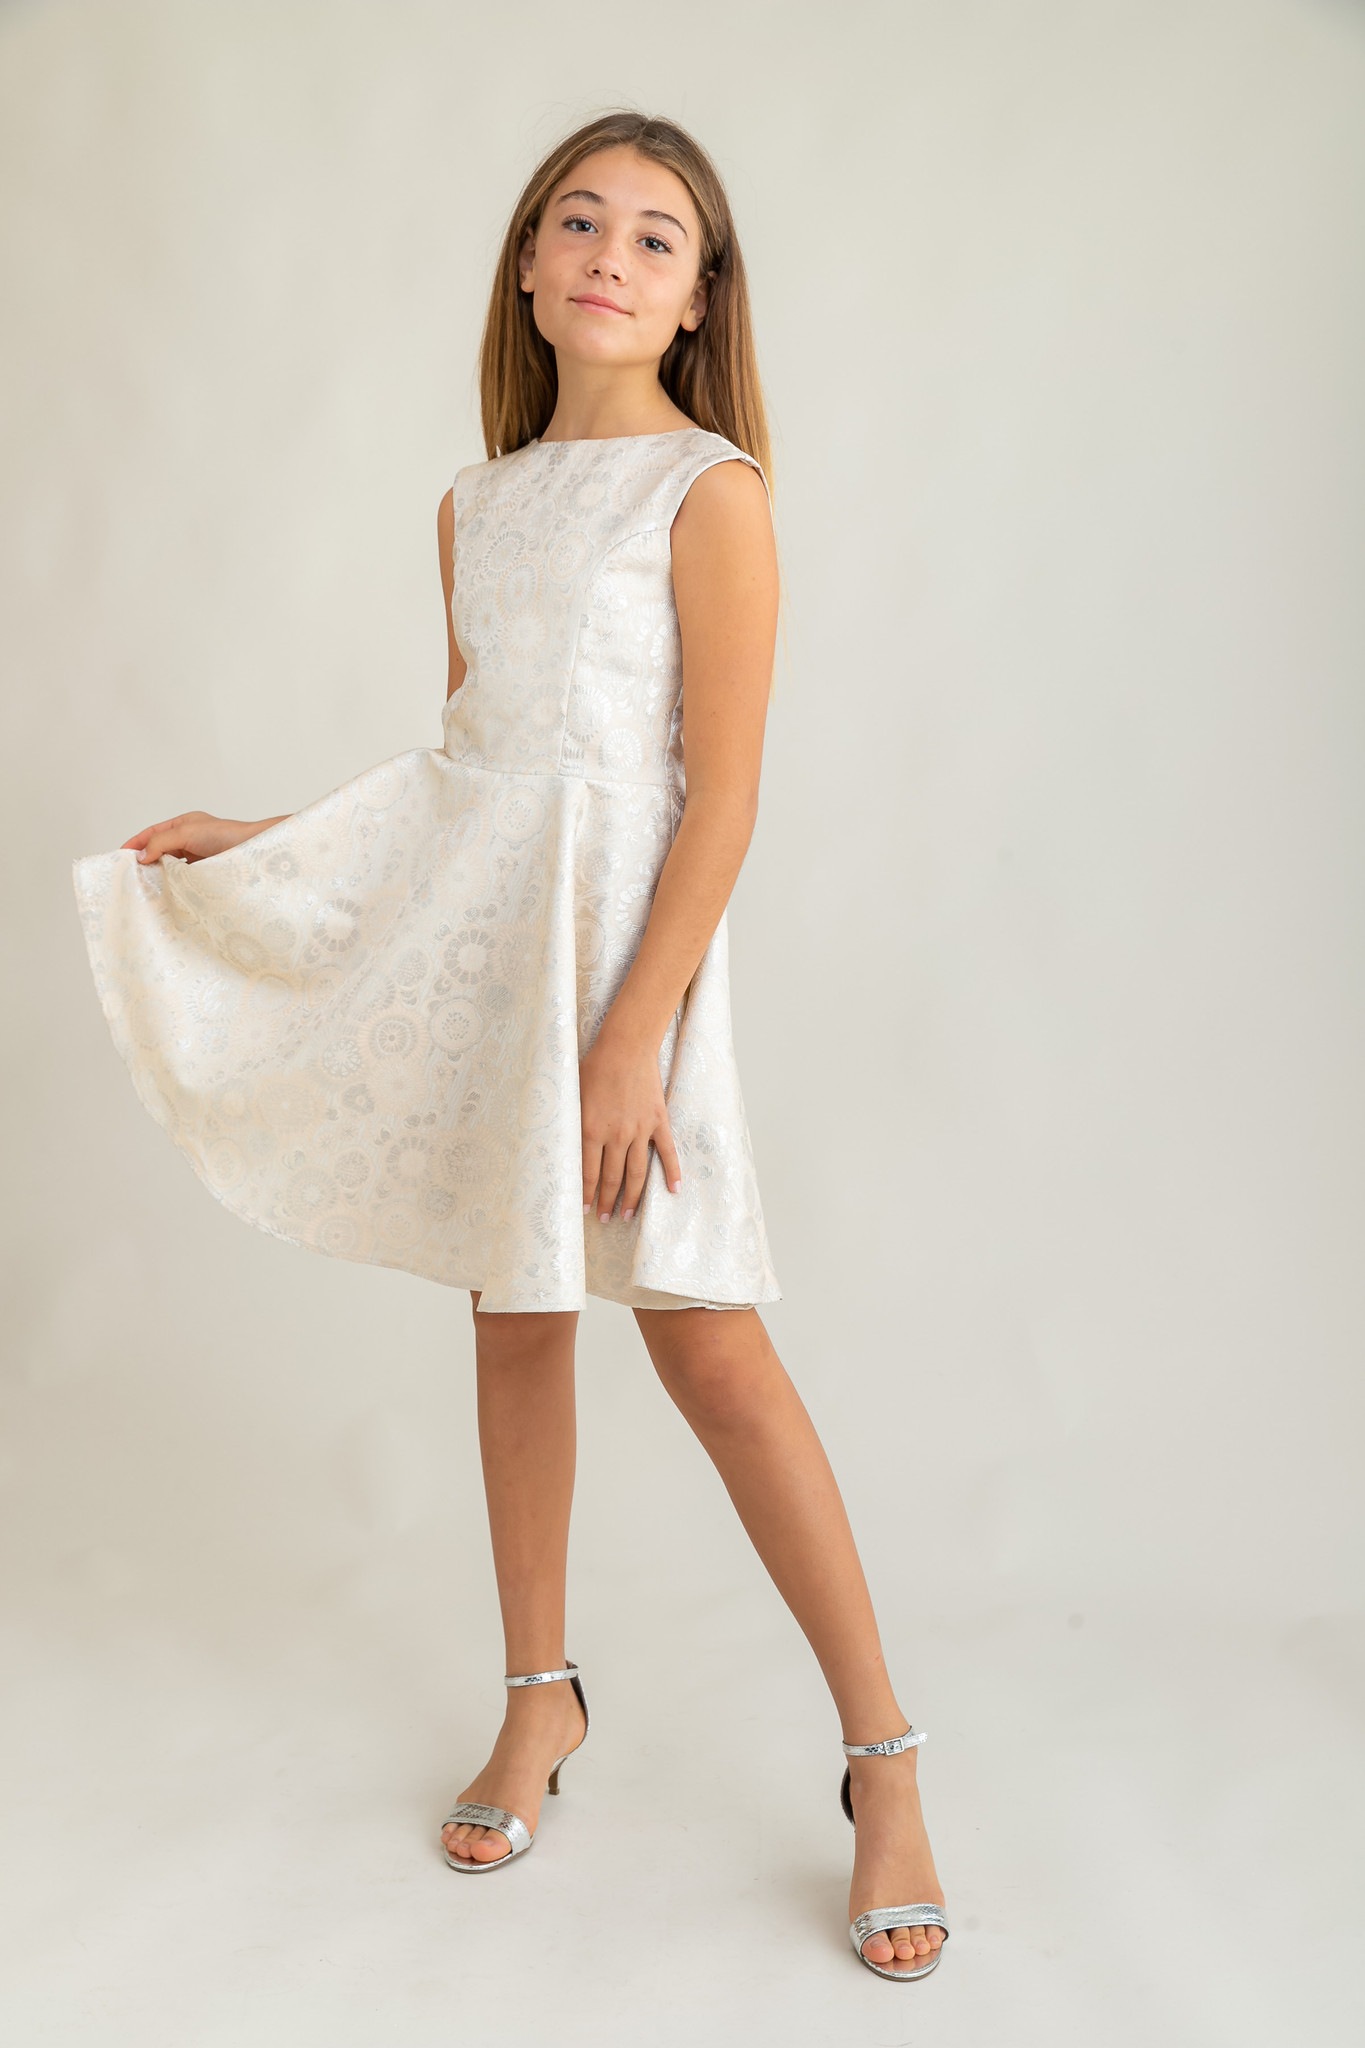 Tween Girls Ivory and Silver Cap Sleeve Dress in Longer Length full length shot.